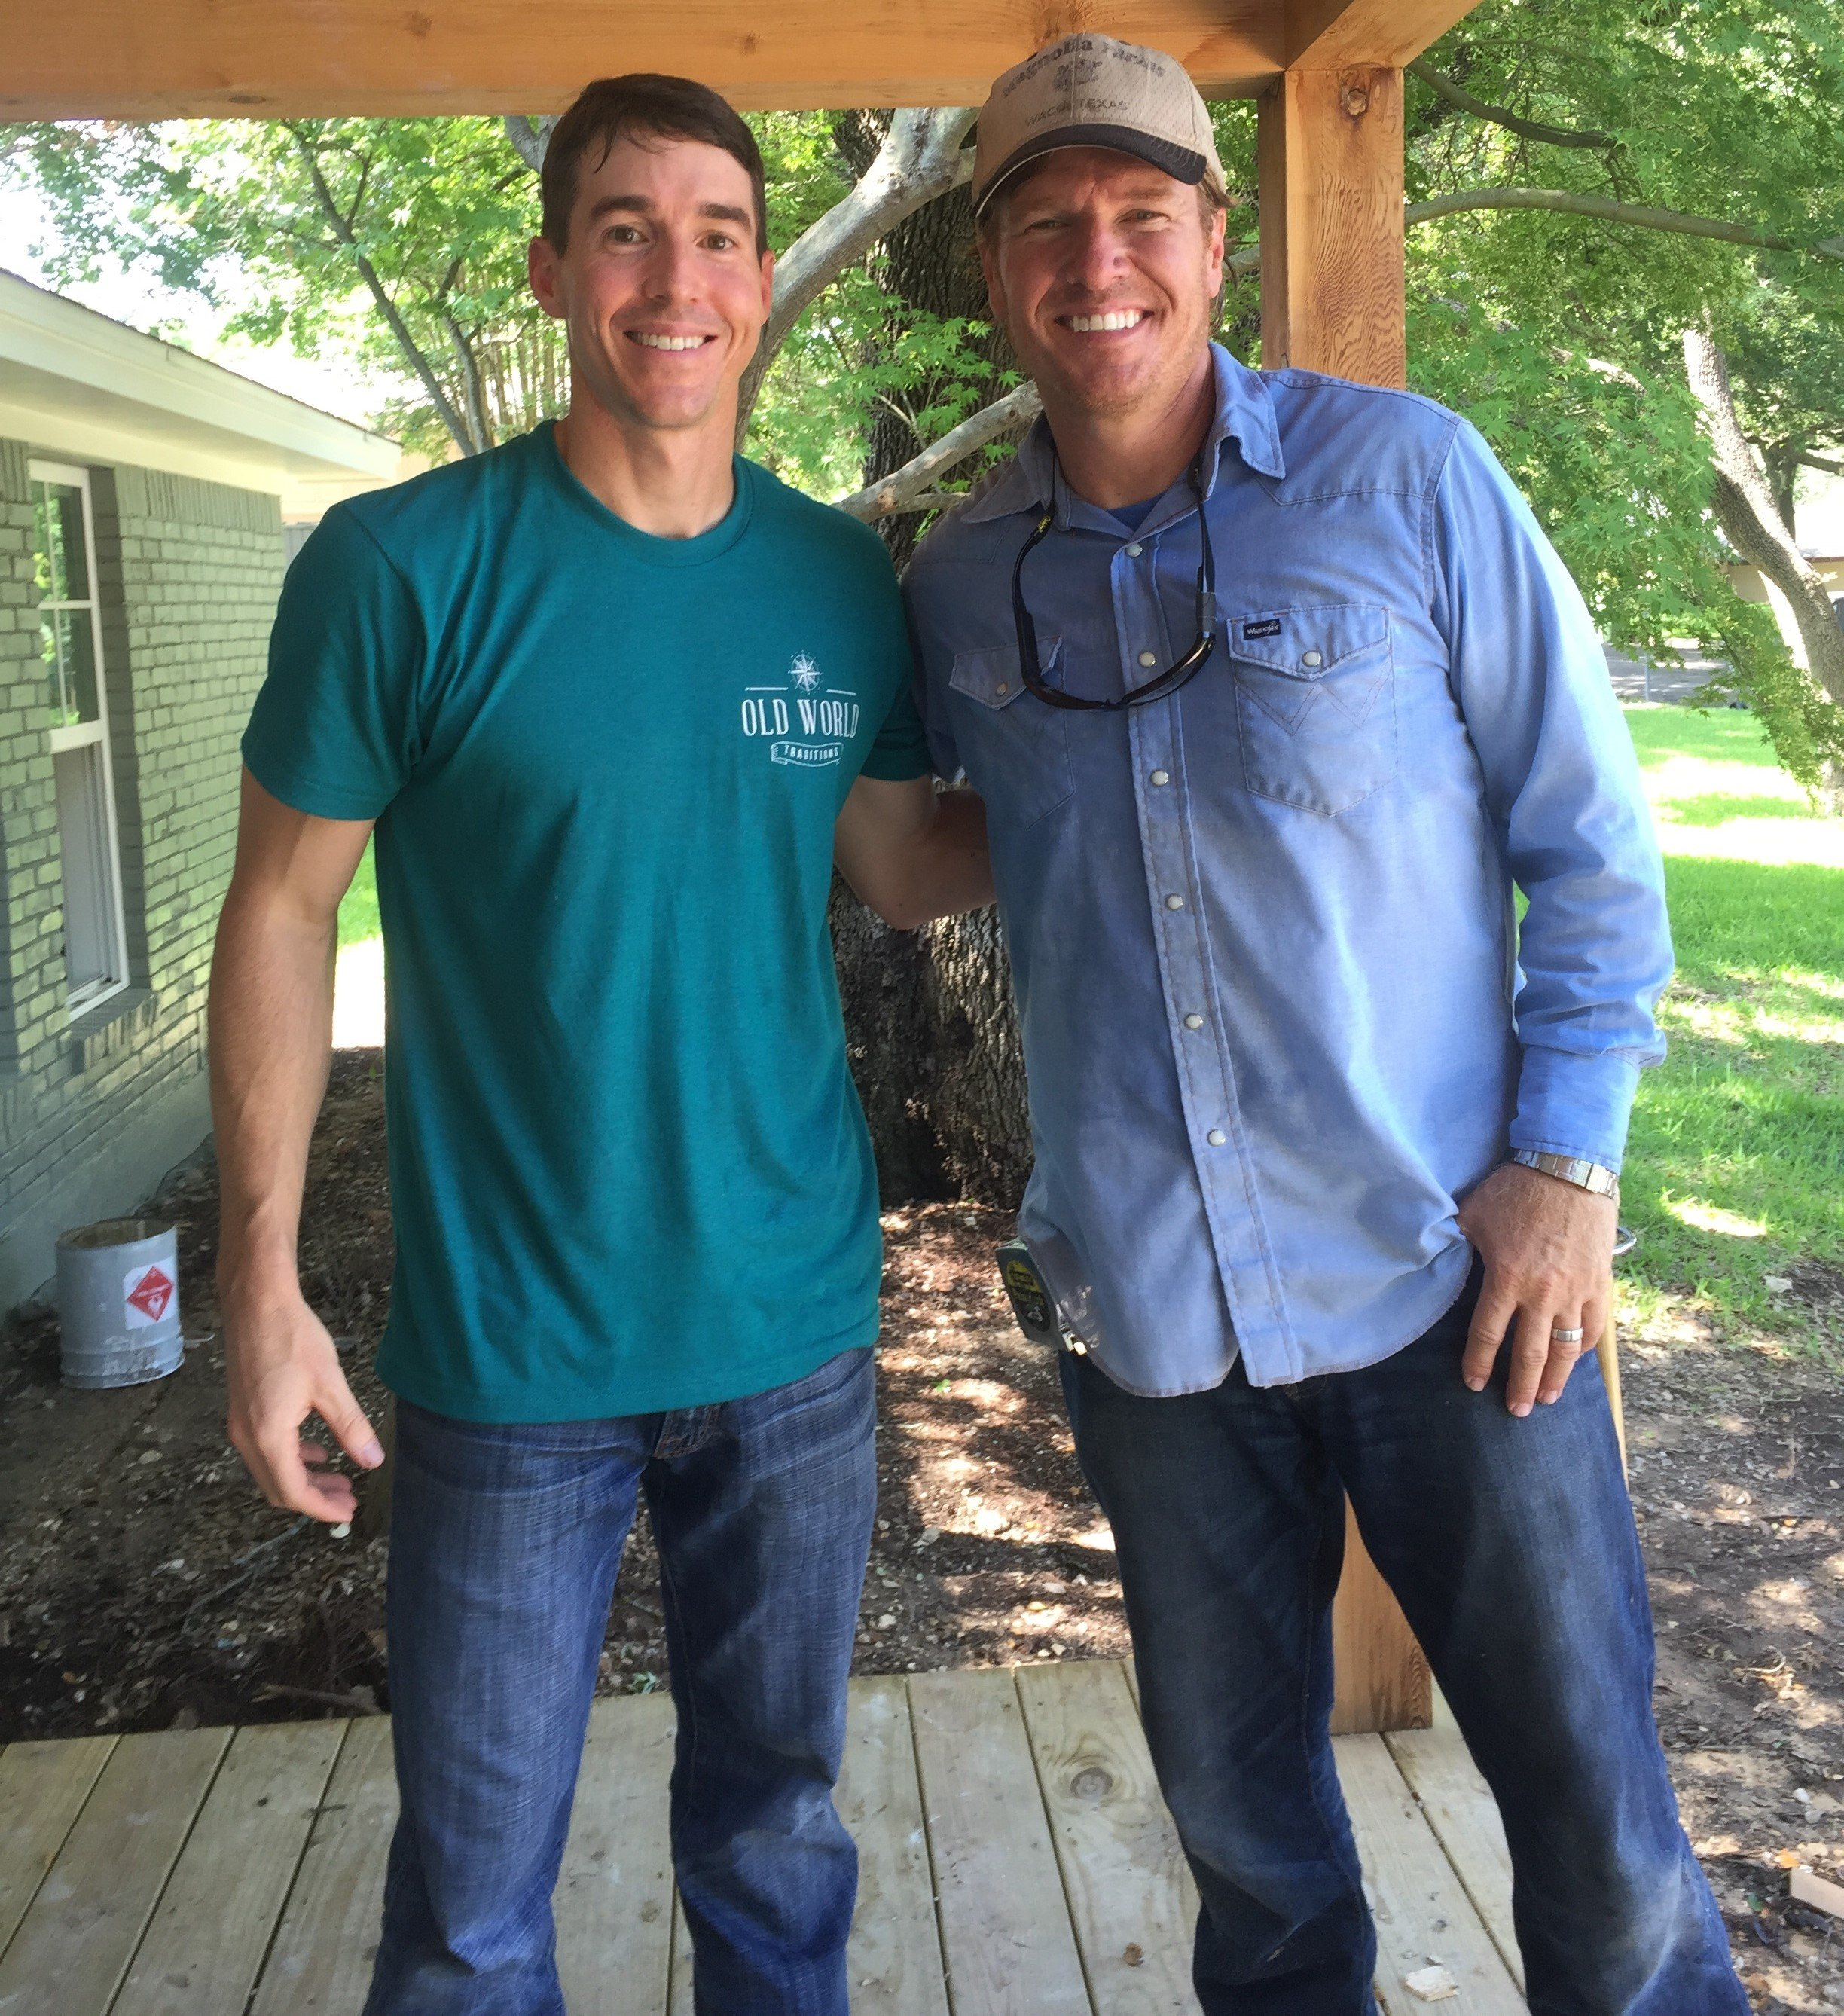 This 39 fixer upper 39 cast member created artwork for the for Old world traditions faux beams